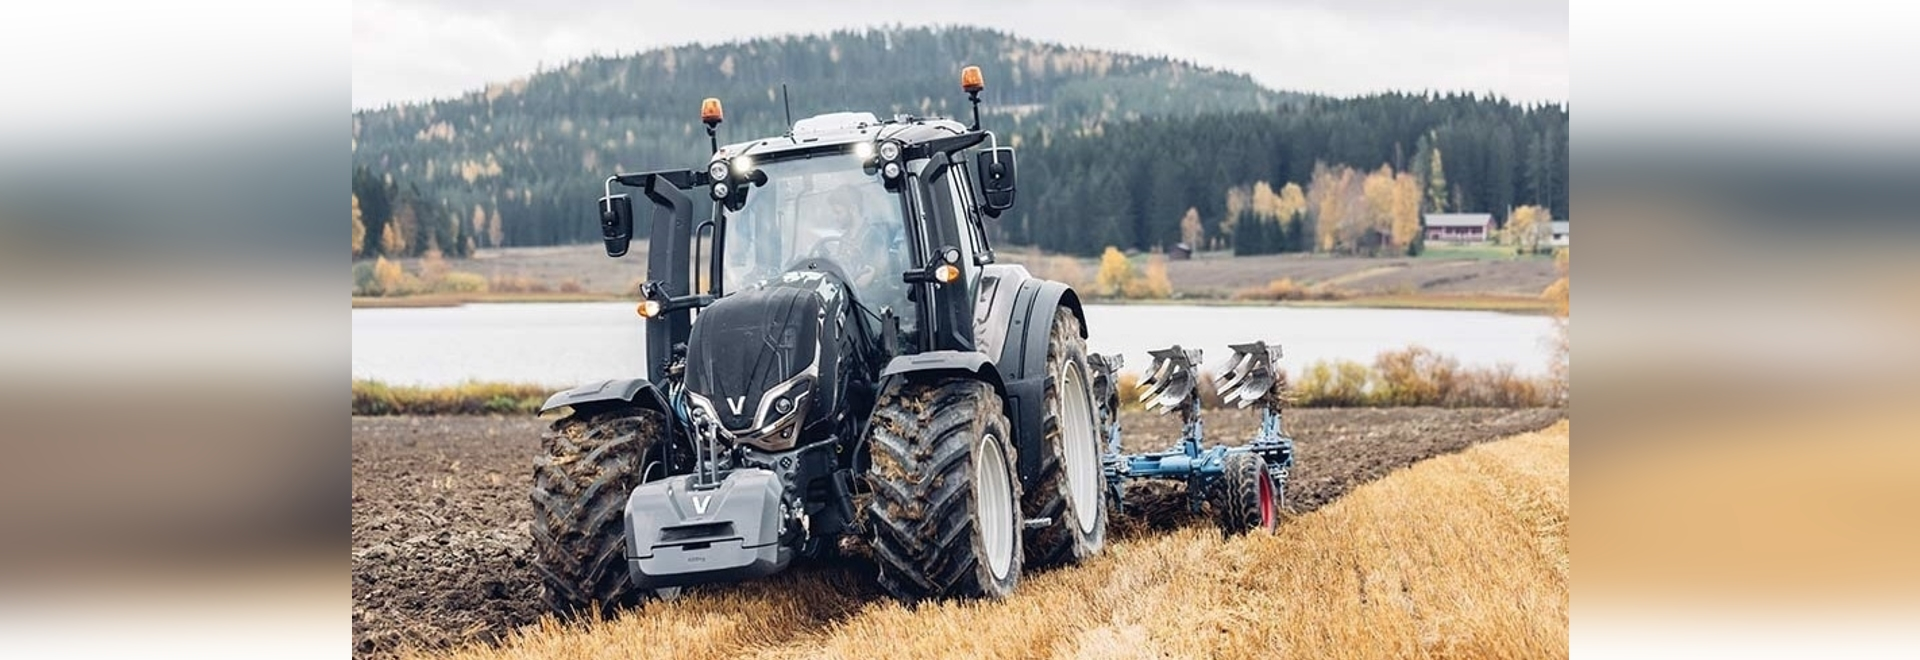 Valtra's 5th generation N and T series have arrived